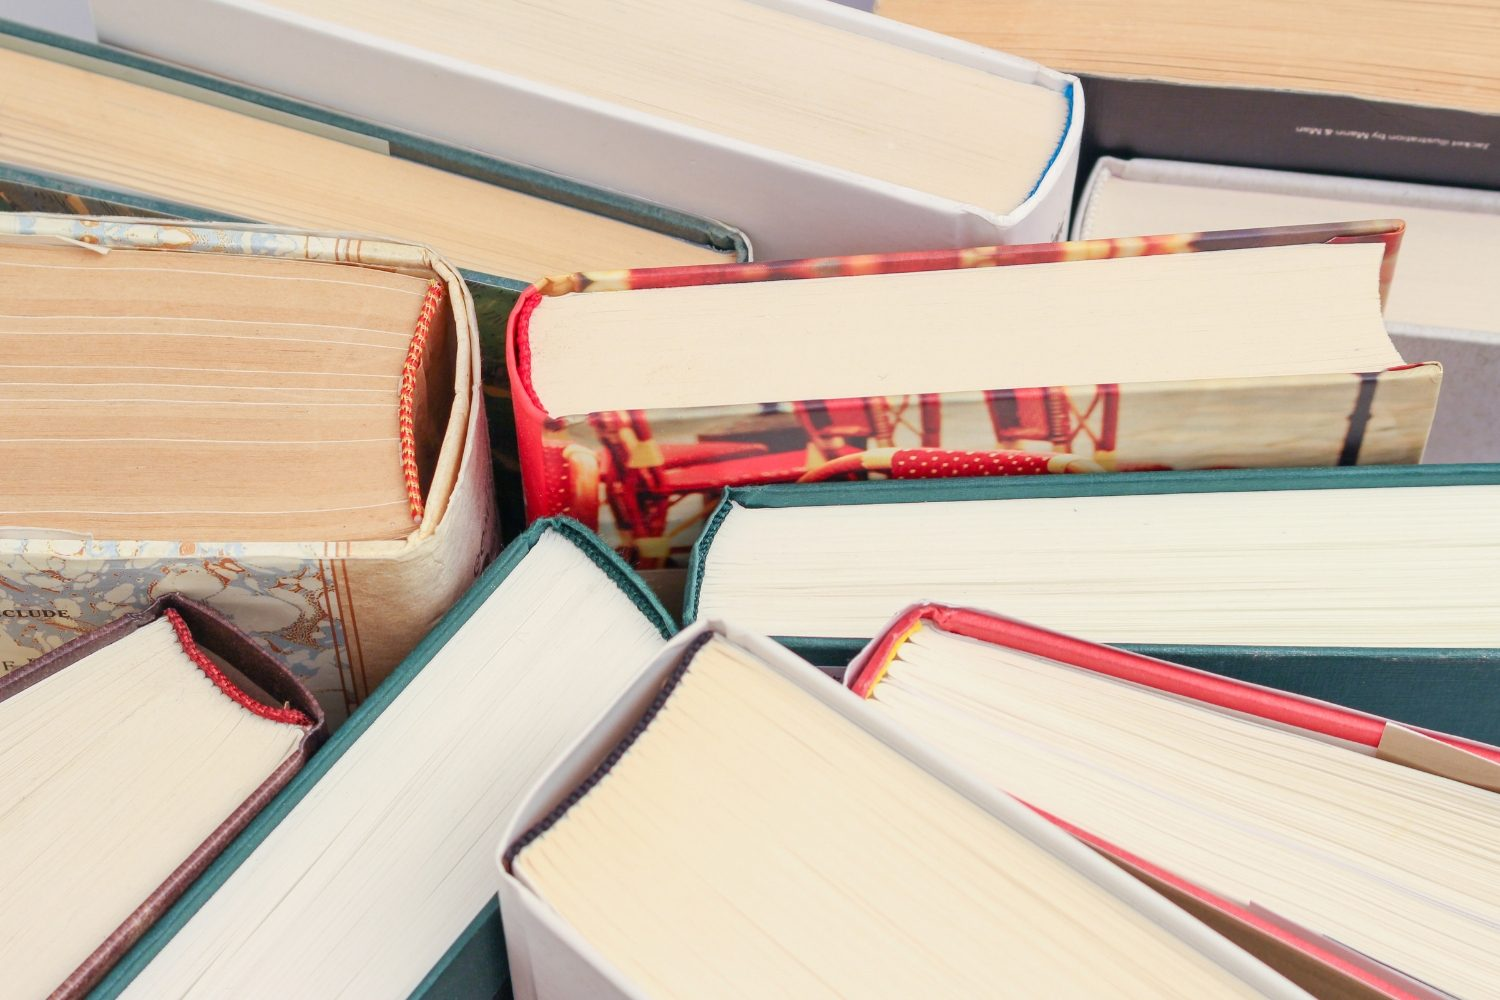 100 Best Self Help Books of All Time